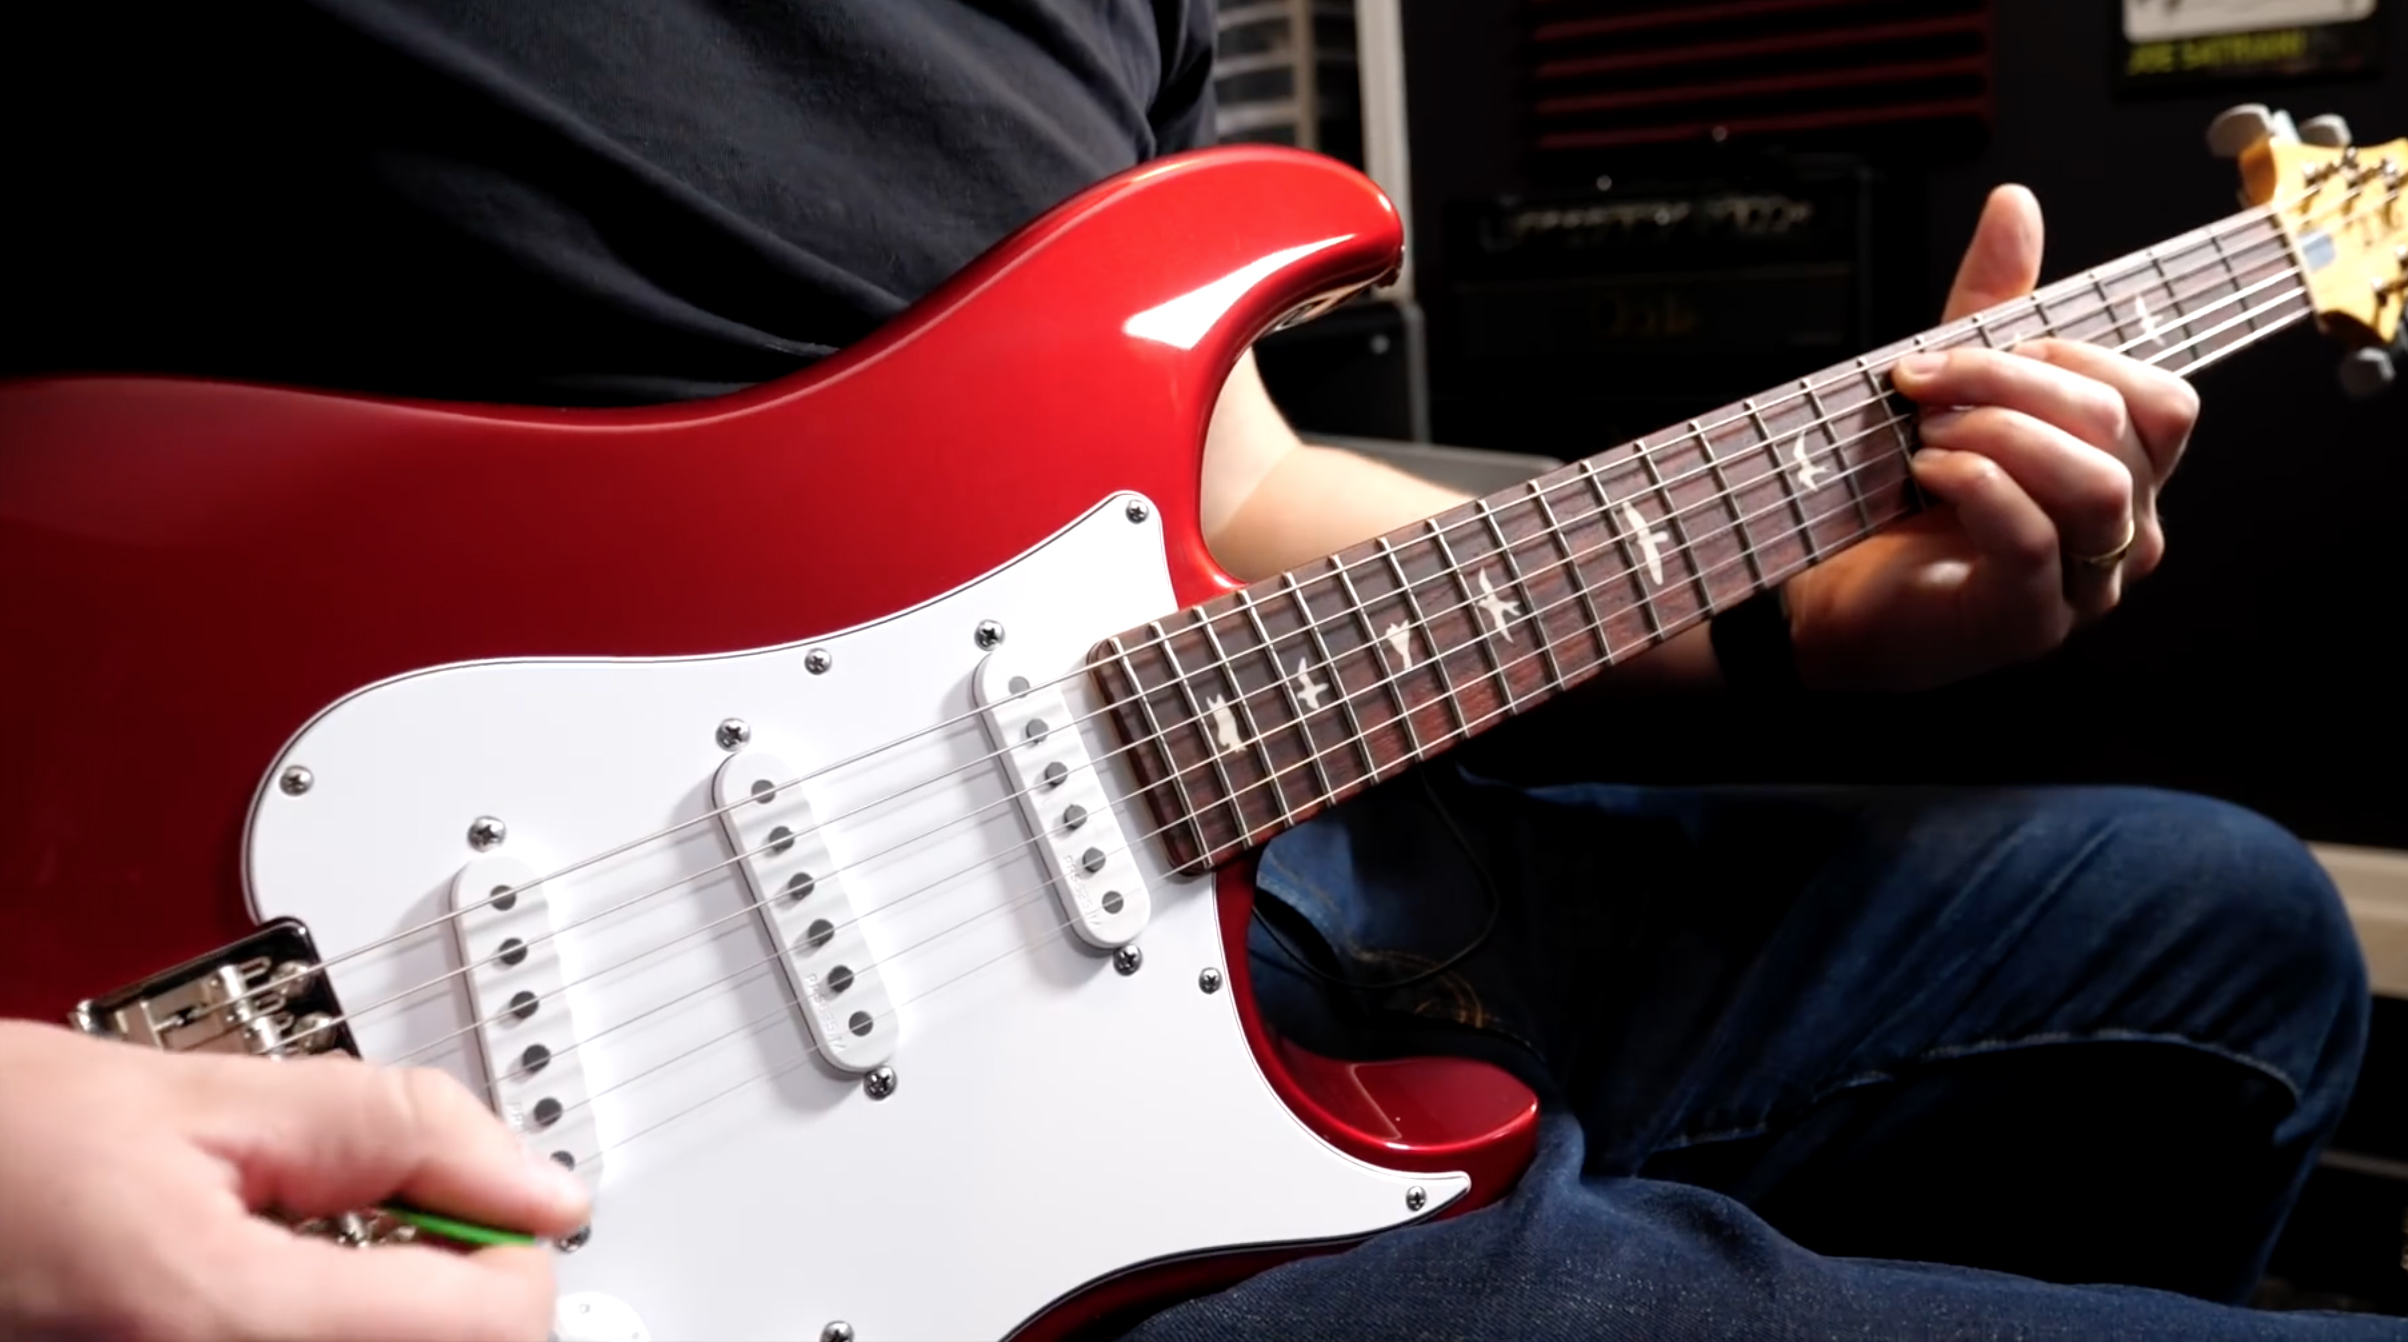 CHROMATIC SCALE - While the Chromatic Scale may seem unmusical at first listen, its uses are innumerable. We'll first identify the basics of what the scale means by itself, and then learn ways to integrate it in various musical situations.